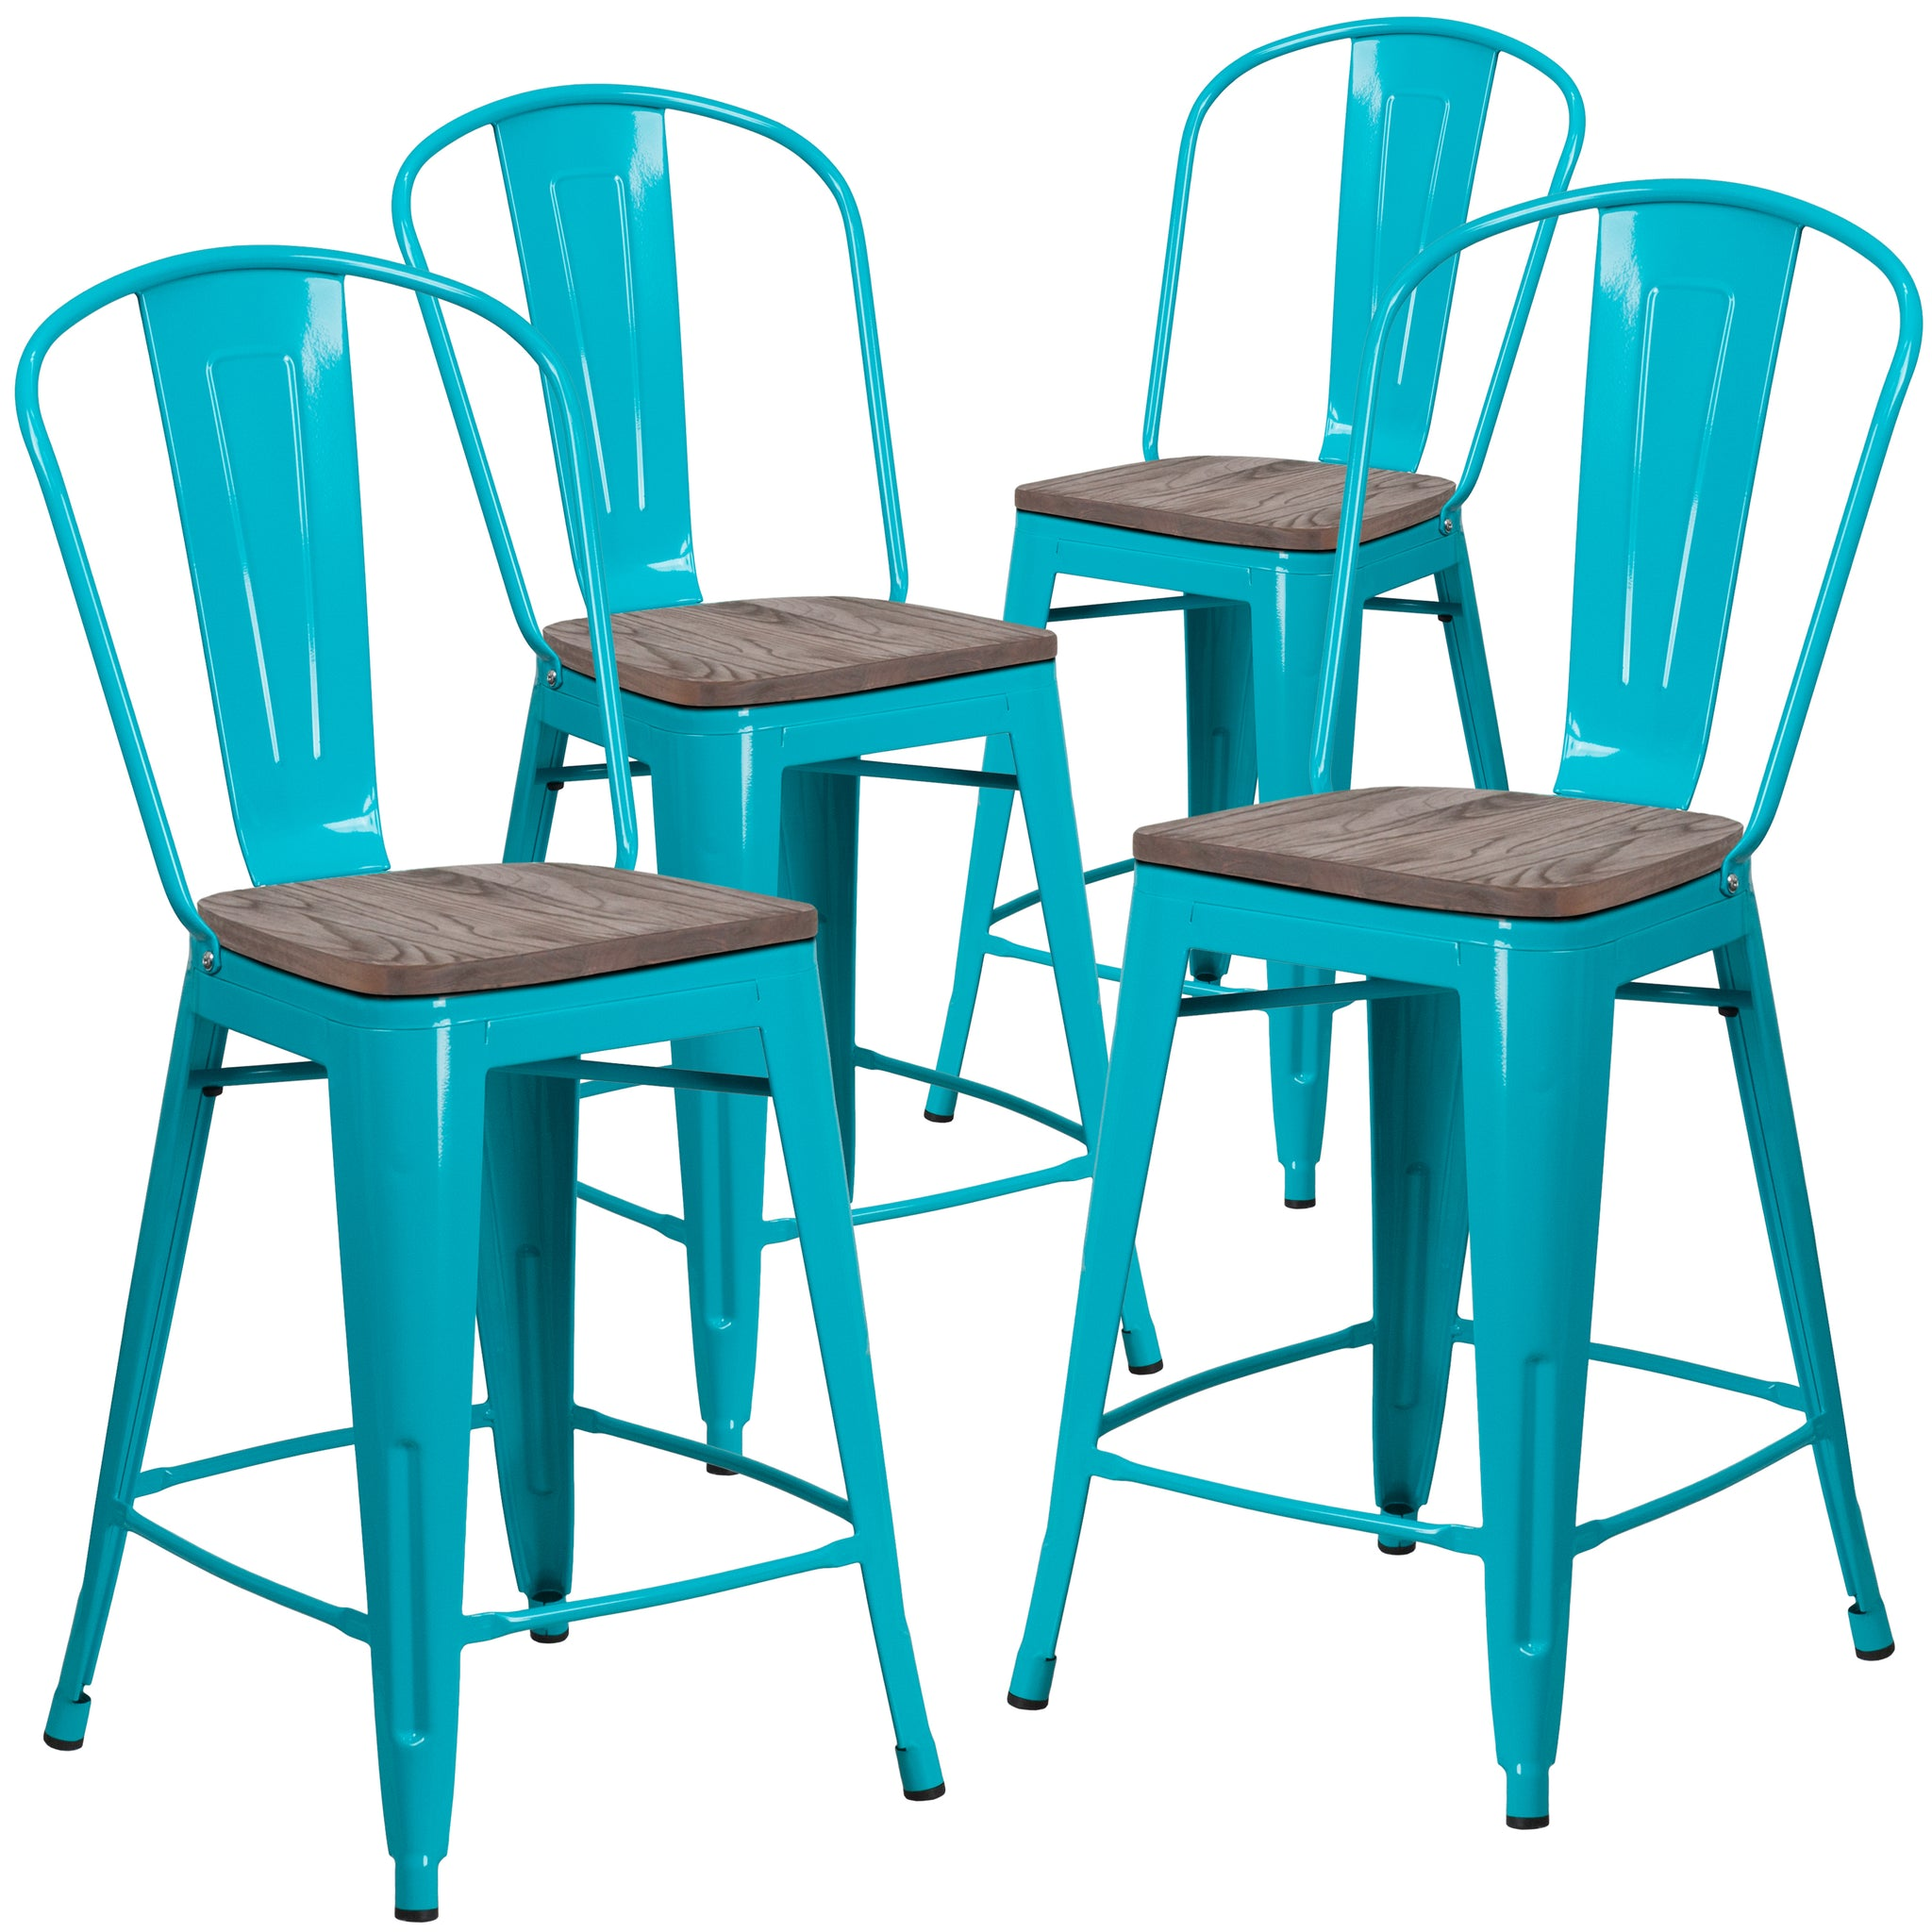 Tremendous 4 Pk 24 High Metal Counter Height Stool With Back And Wood Seat Copper Lamtechconsult Wood Chair Design Ideas Lamtechconsultcom